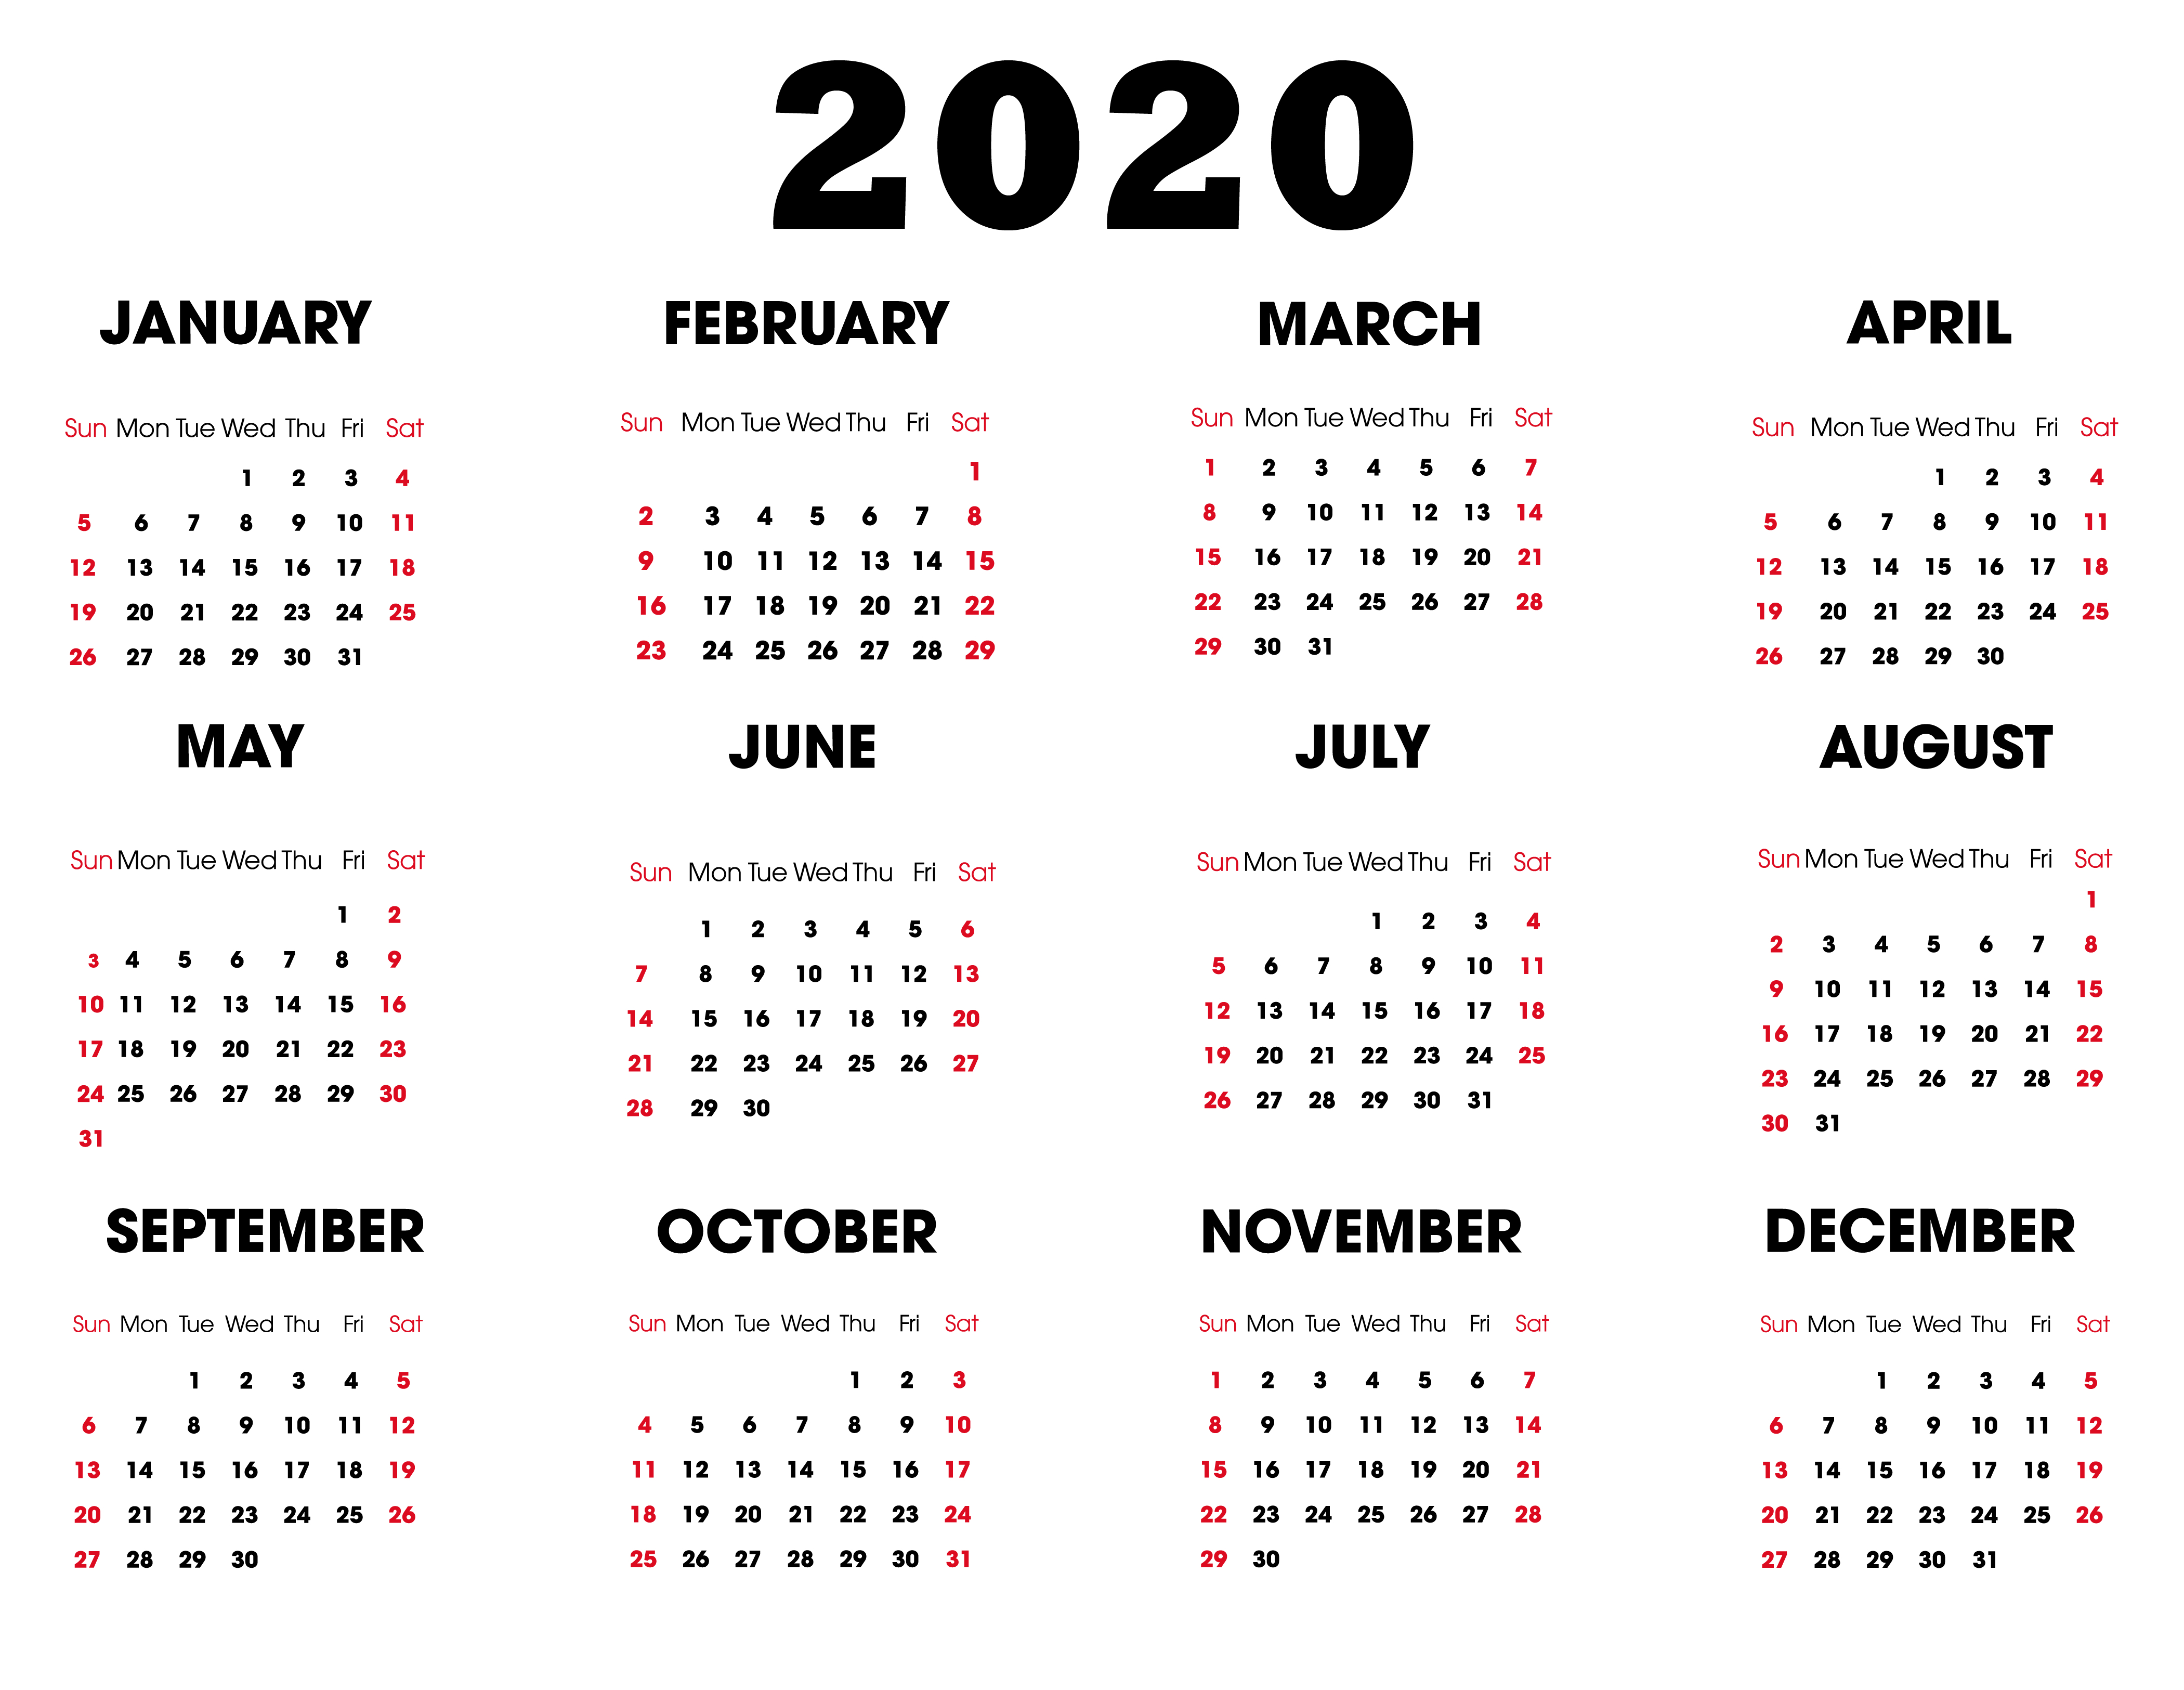 Free Printable Calendar 2020 : 12 Month Calendar With intended for Printable 2020 Calander